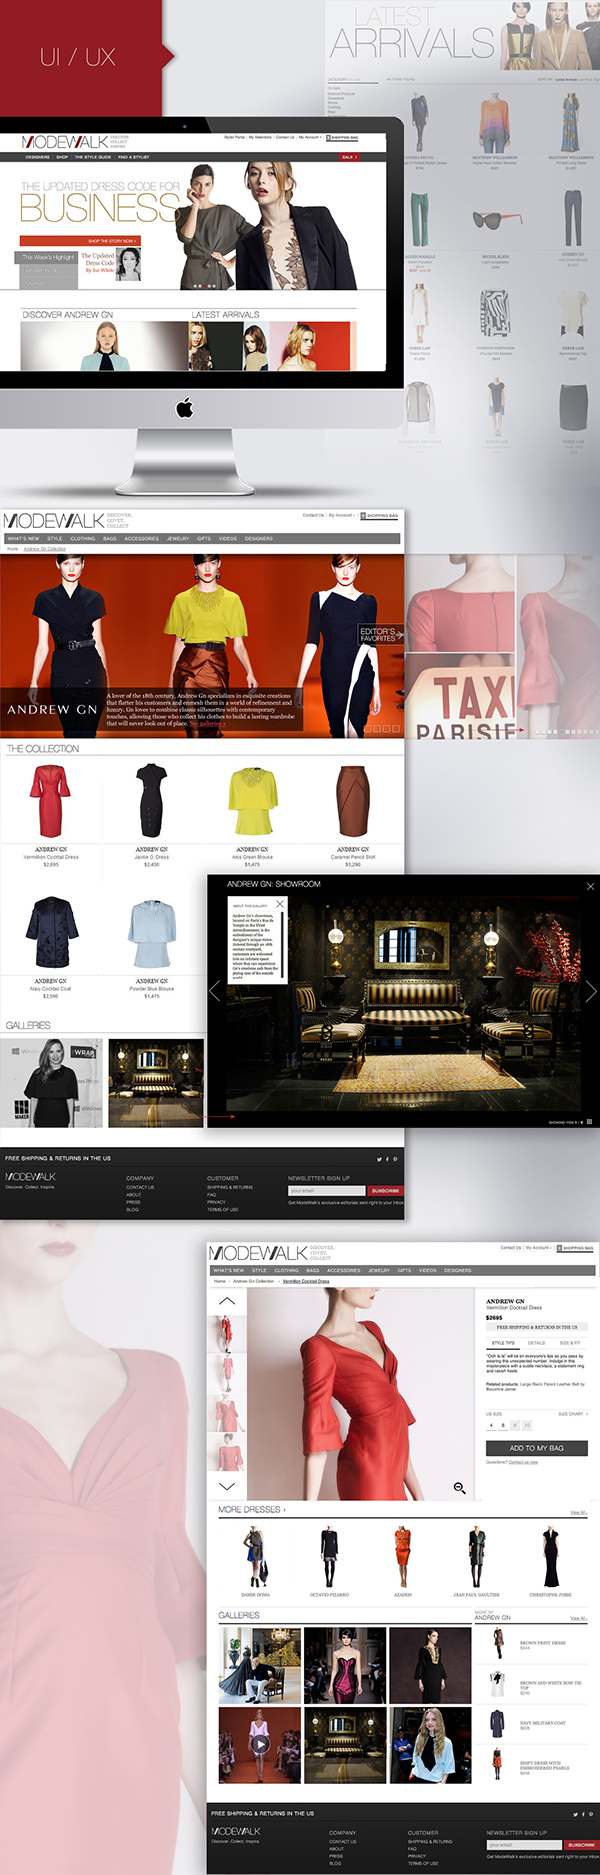 design UI ux user interface user experience Full Brand print Ecommerce Web Website site videos editorial